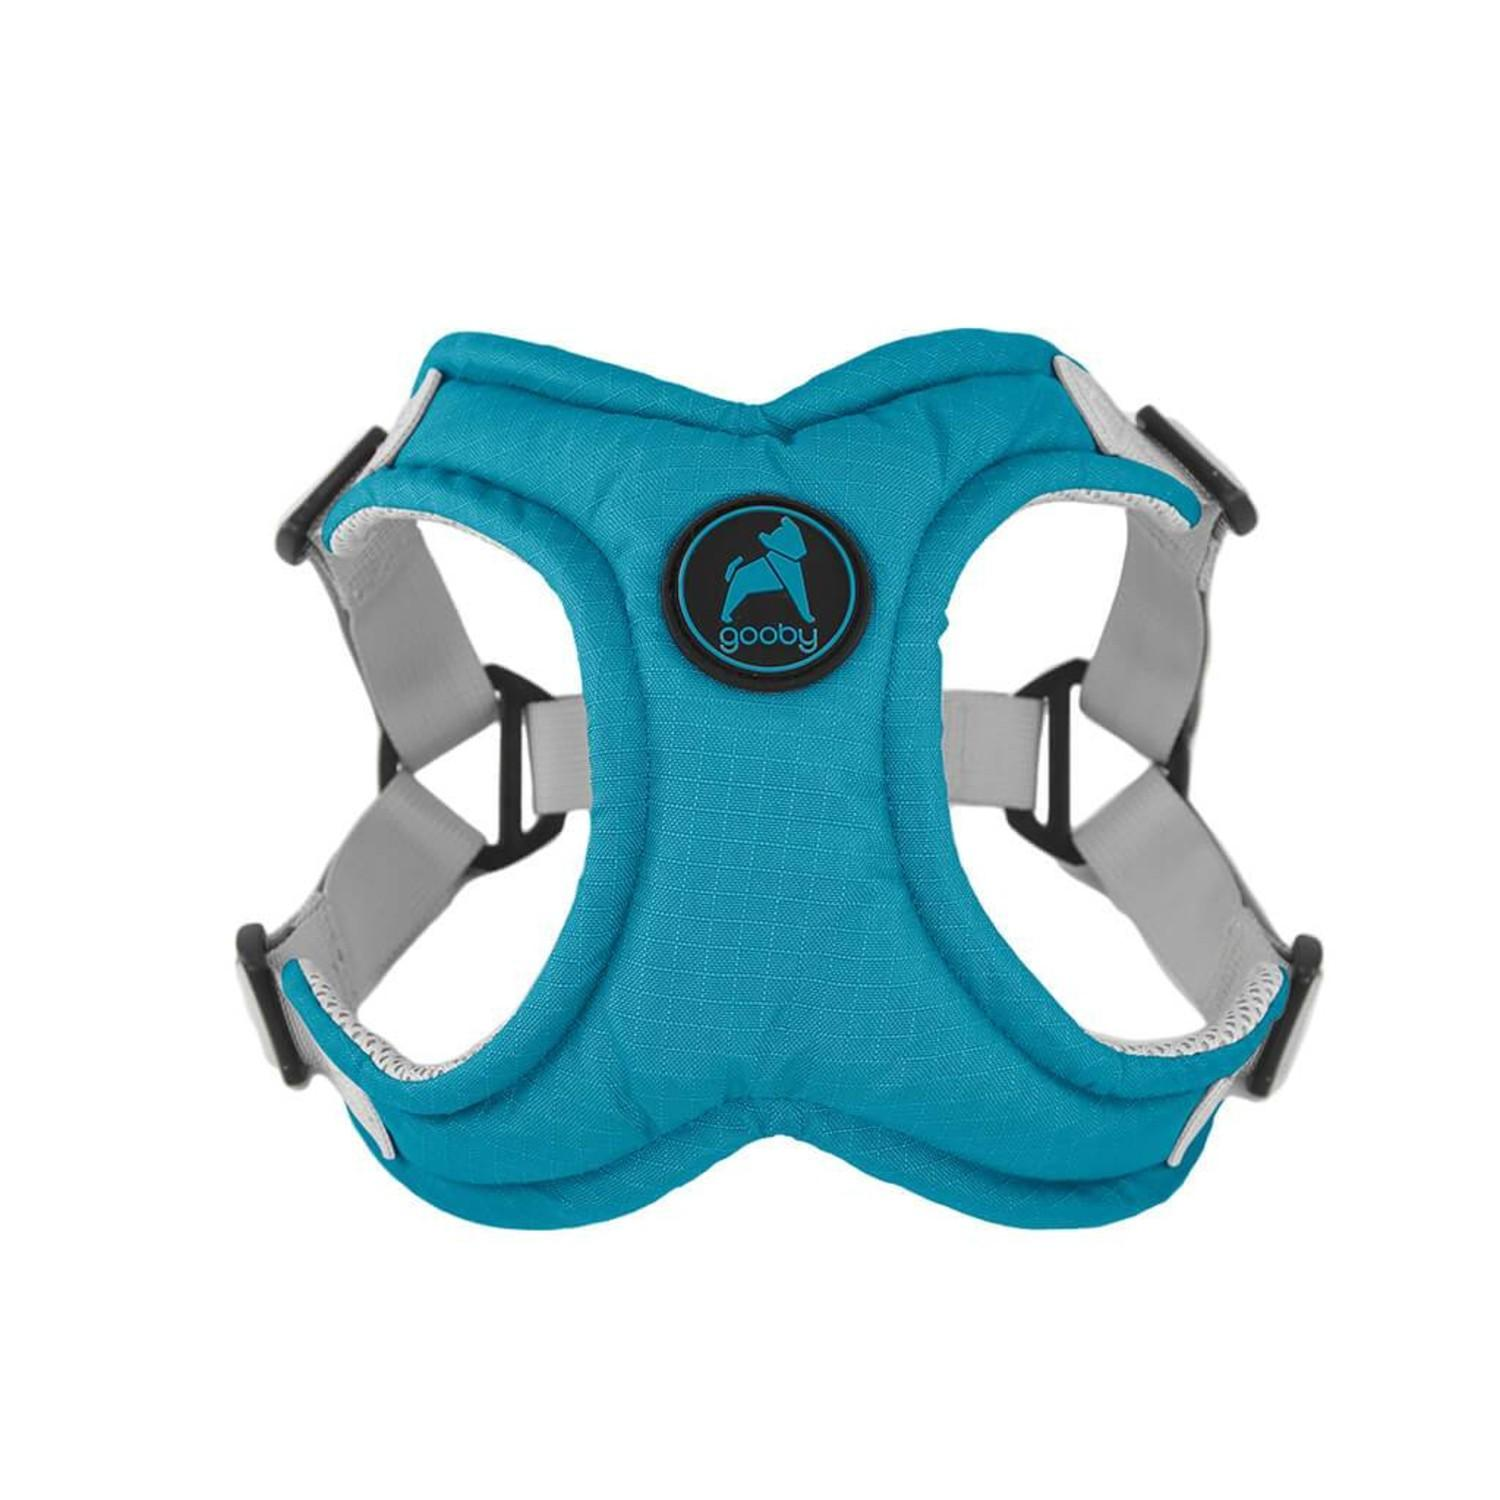 Gooby Memory Foam Step-in Dog Harness - Turquoise